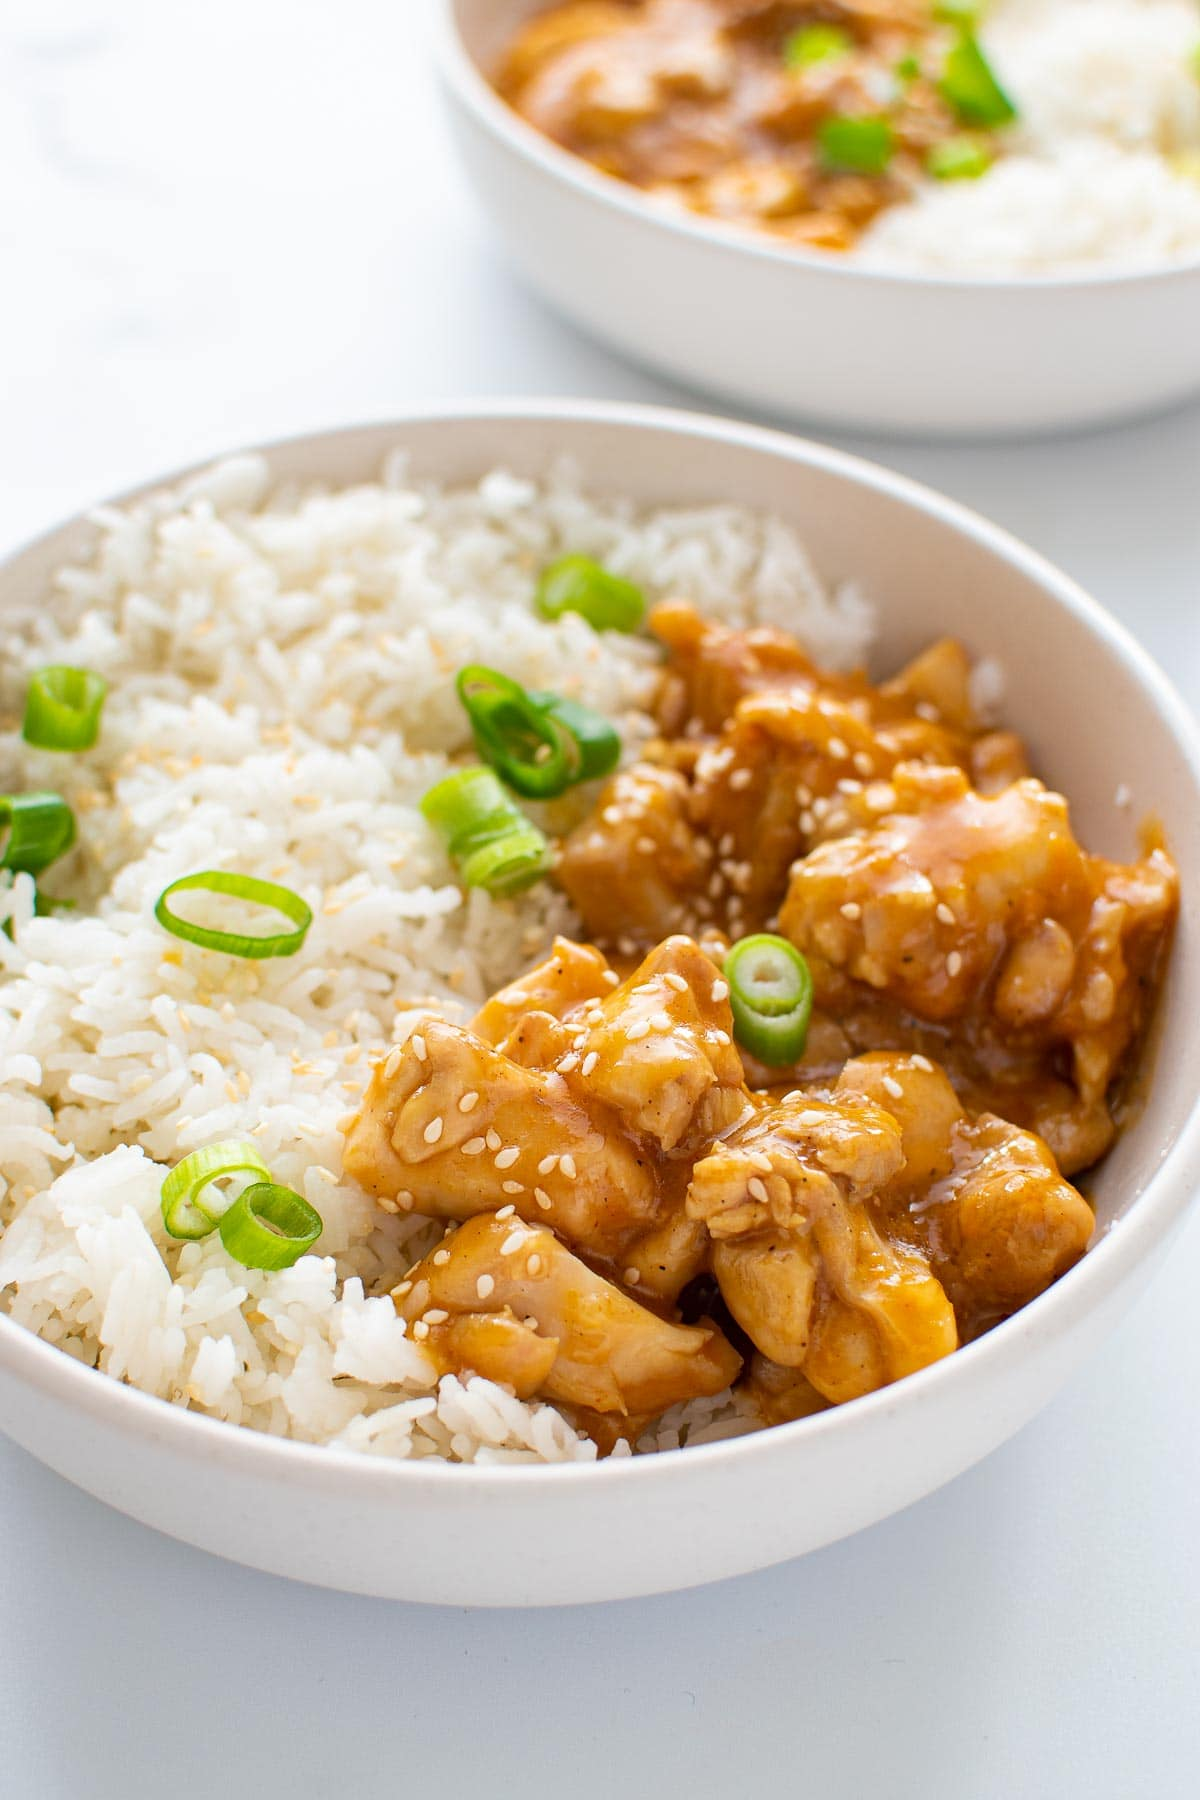 A bowl with sticky orange chicken, rice and green onions.